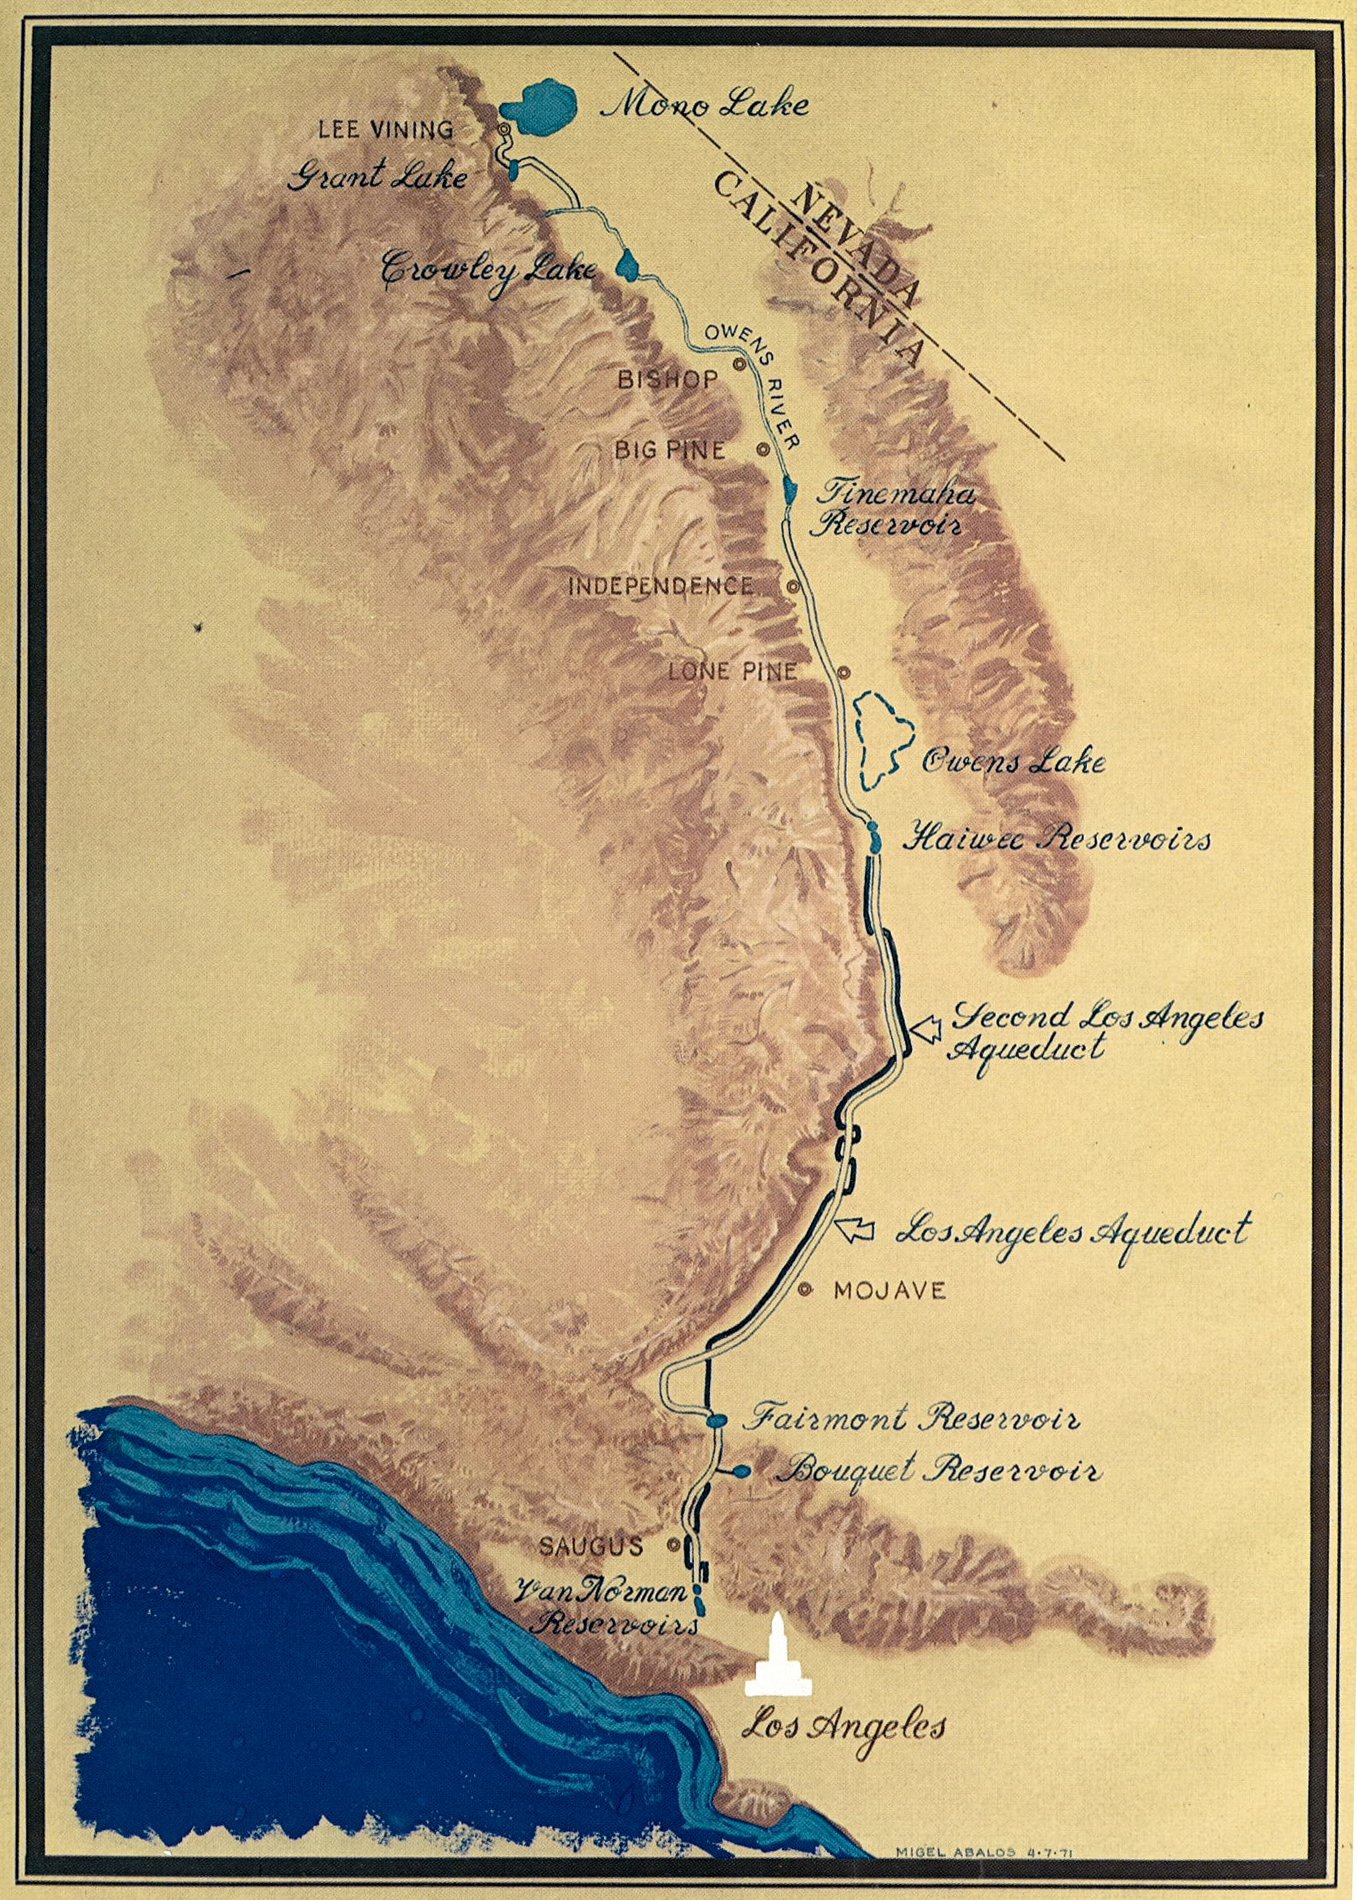 FileLos Angeles Aqueduct Mappng Wikimedia Commons - City of los angeles jurisdiction map